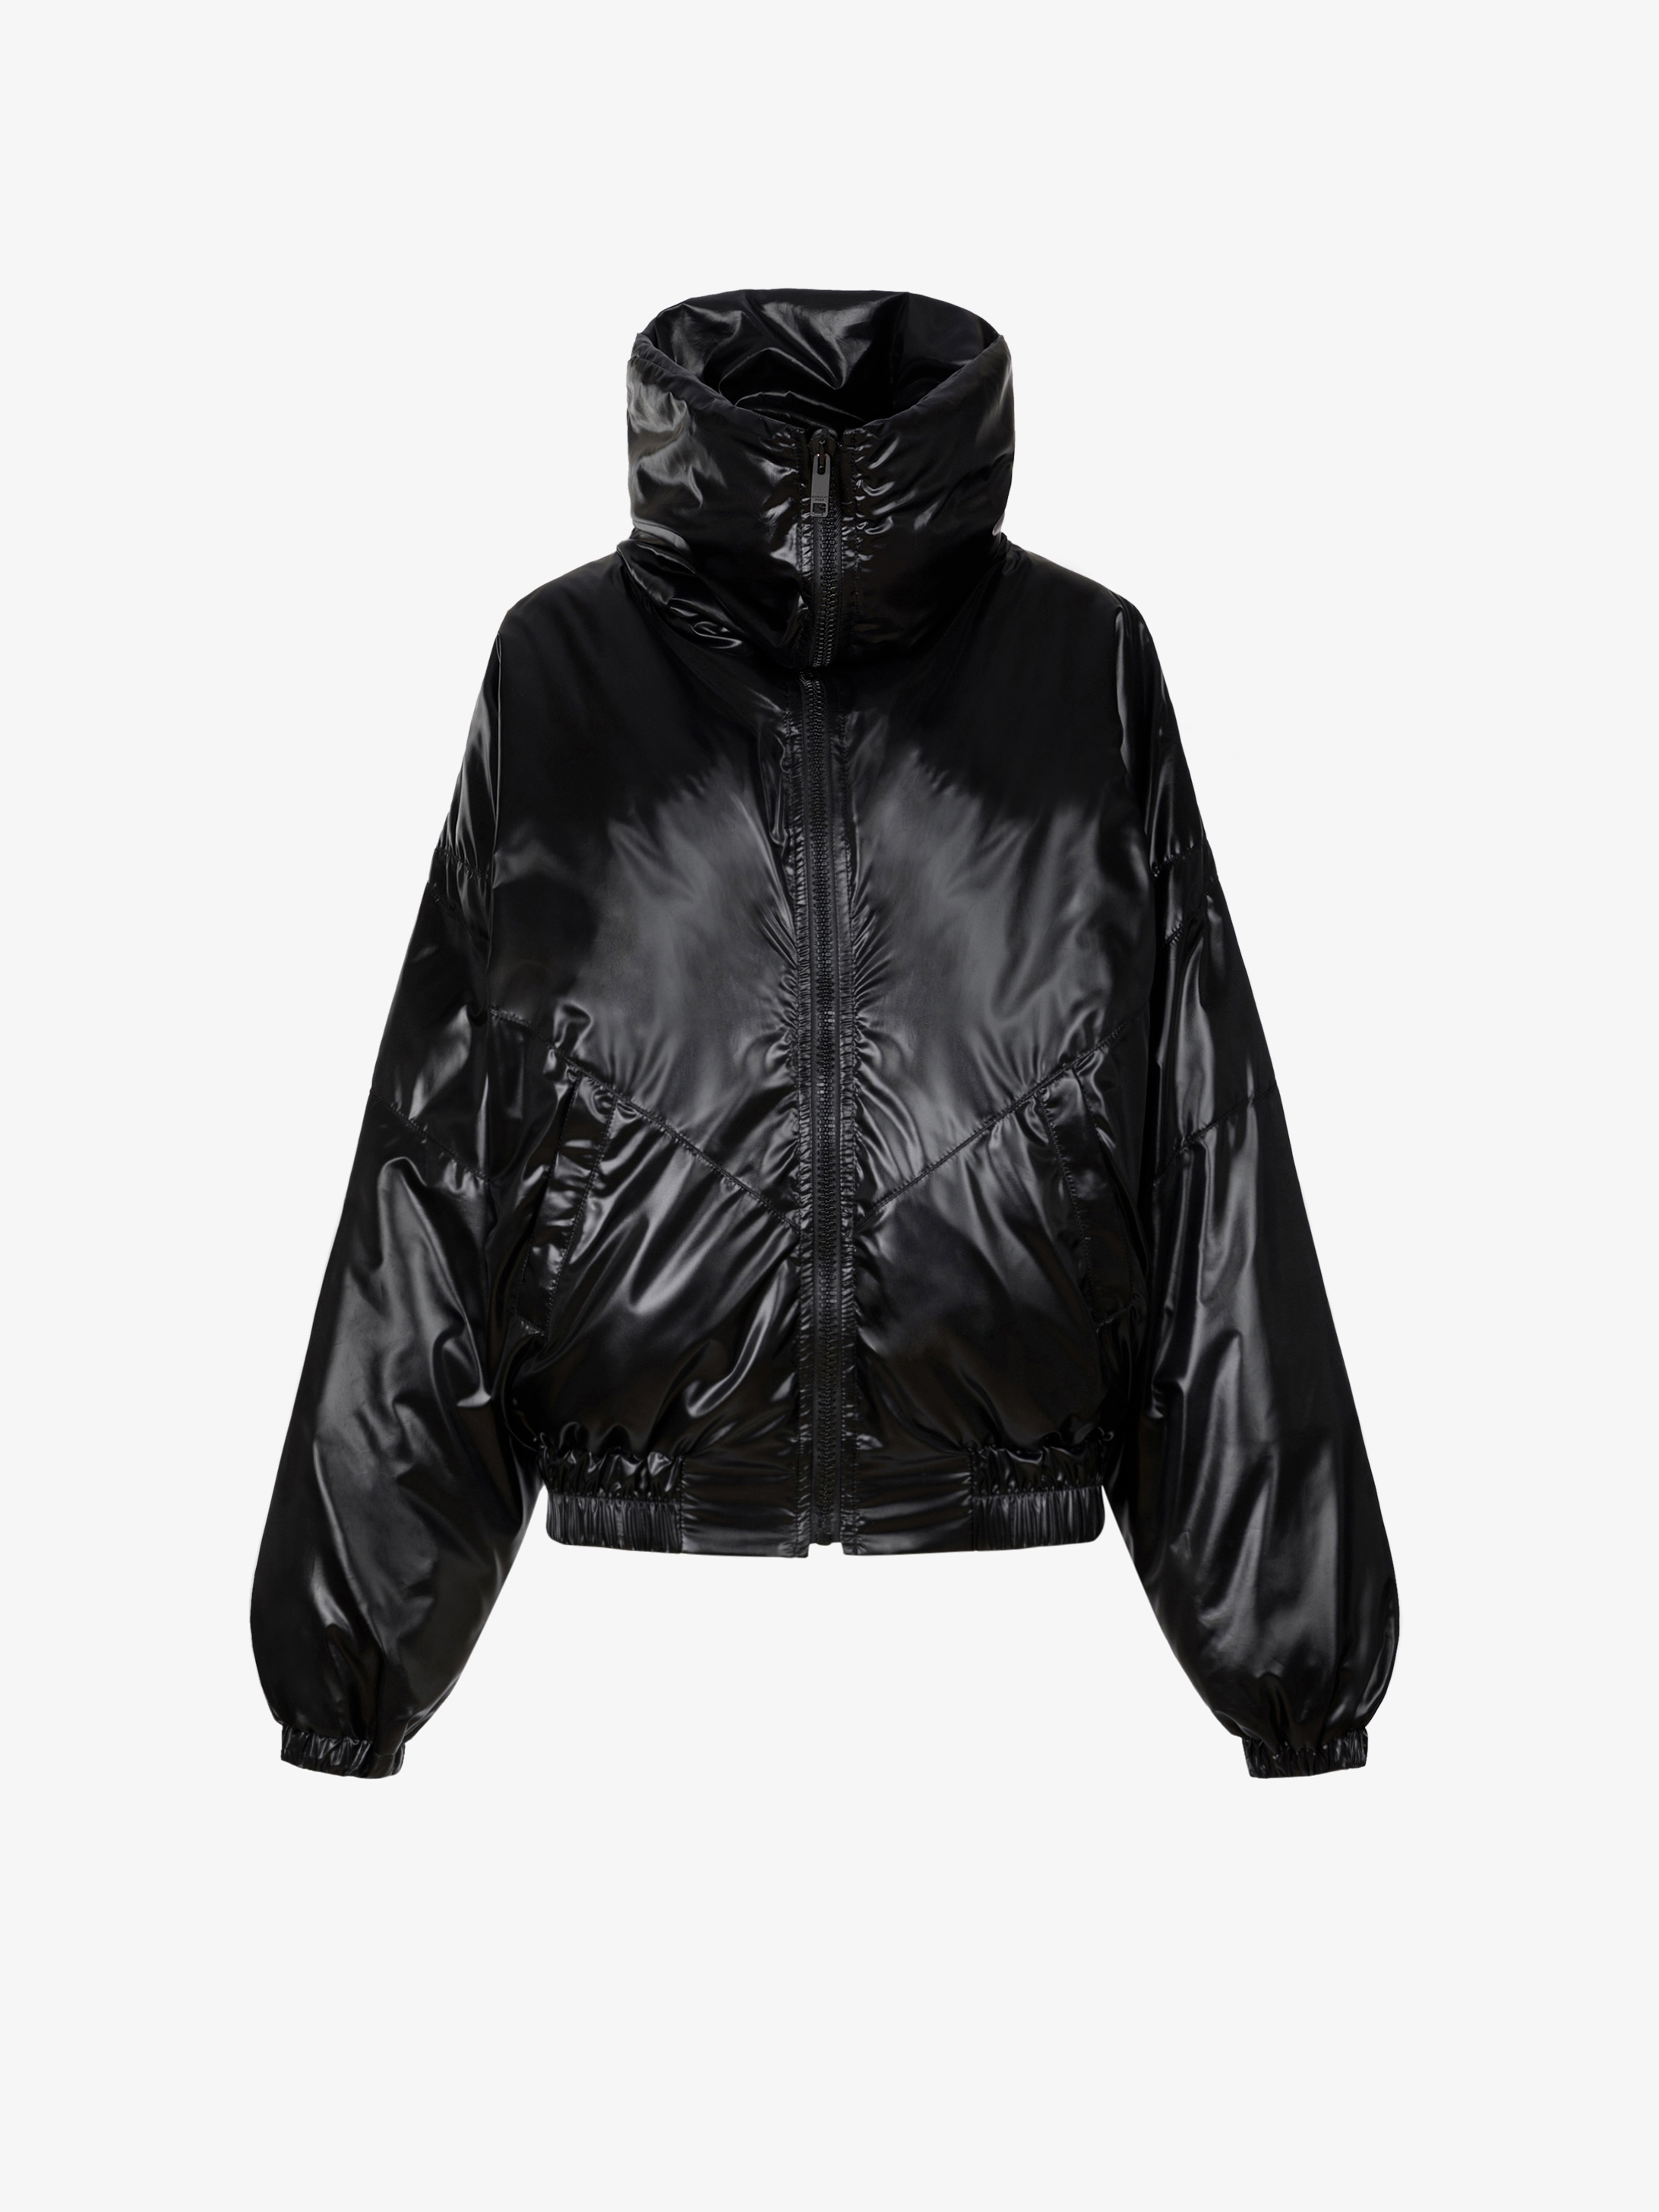 GIVENCHY puffa jacket with oversized collar